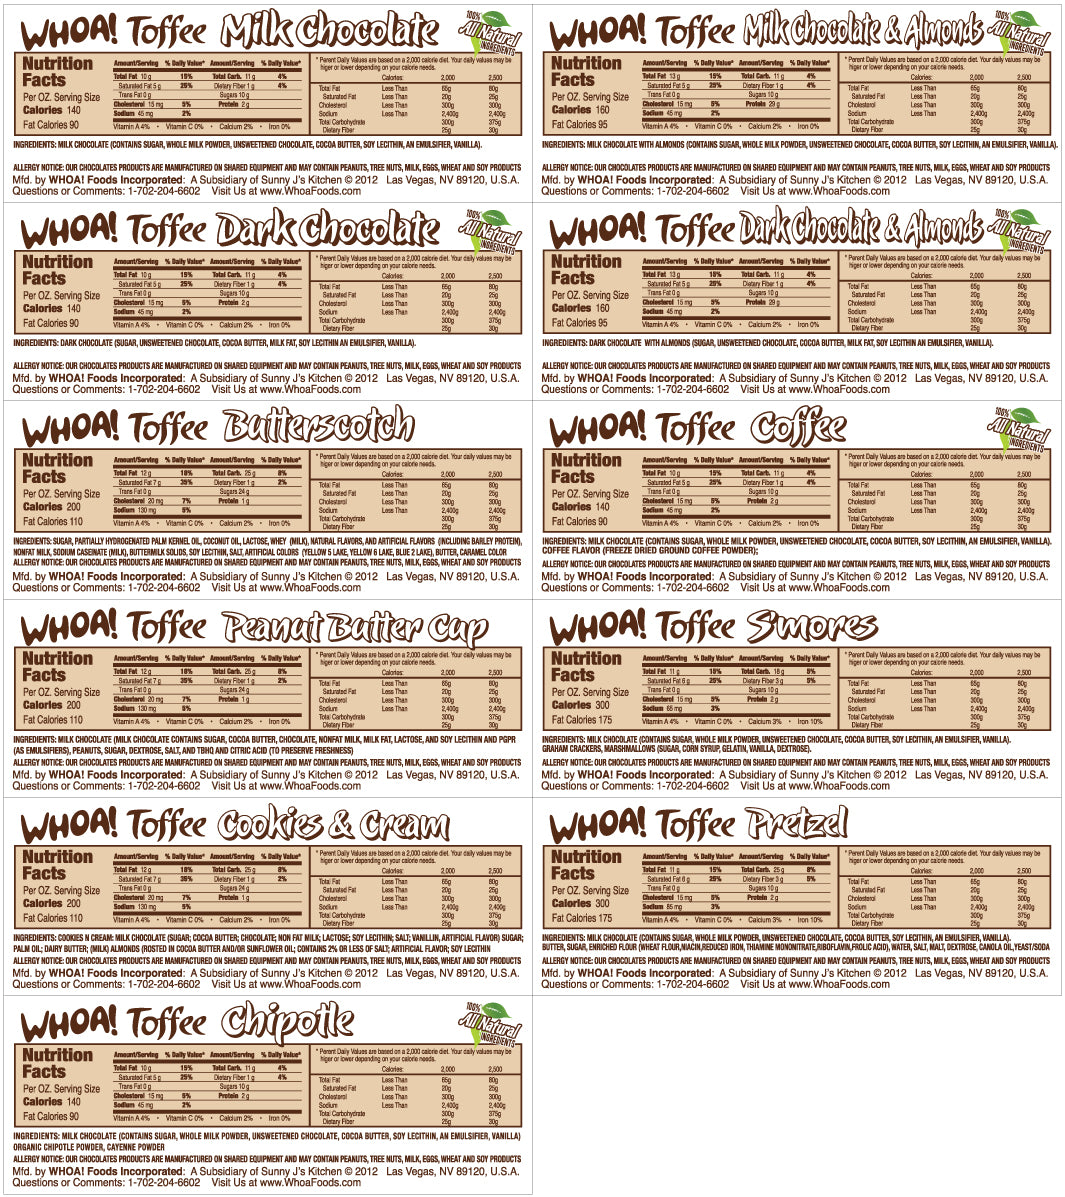 Whoa! Toffee Nutritional Labels